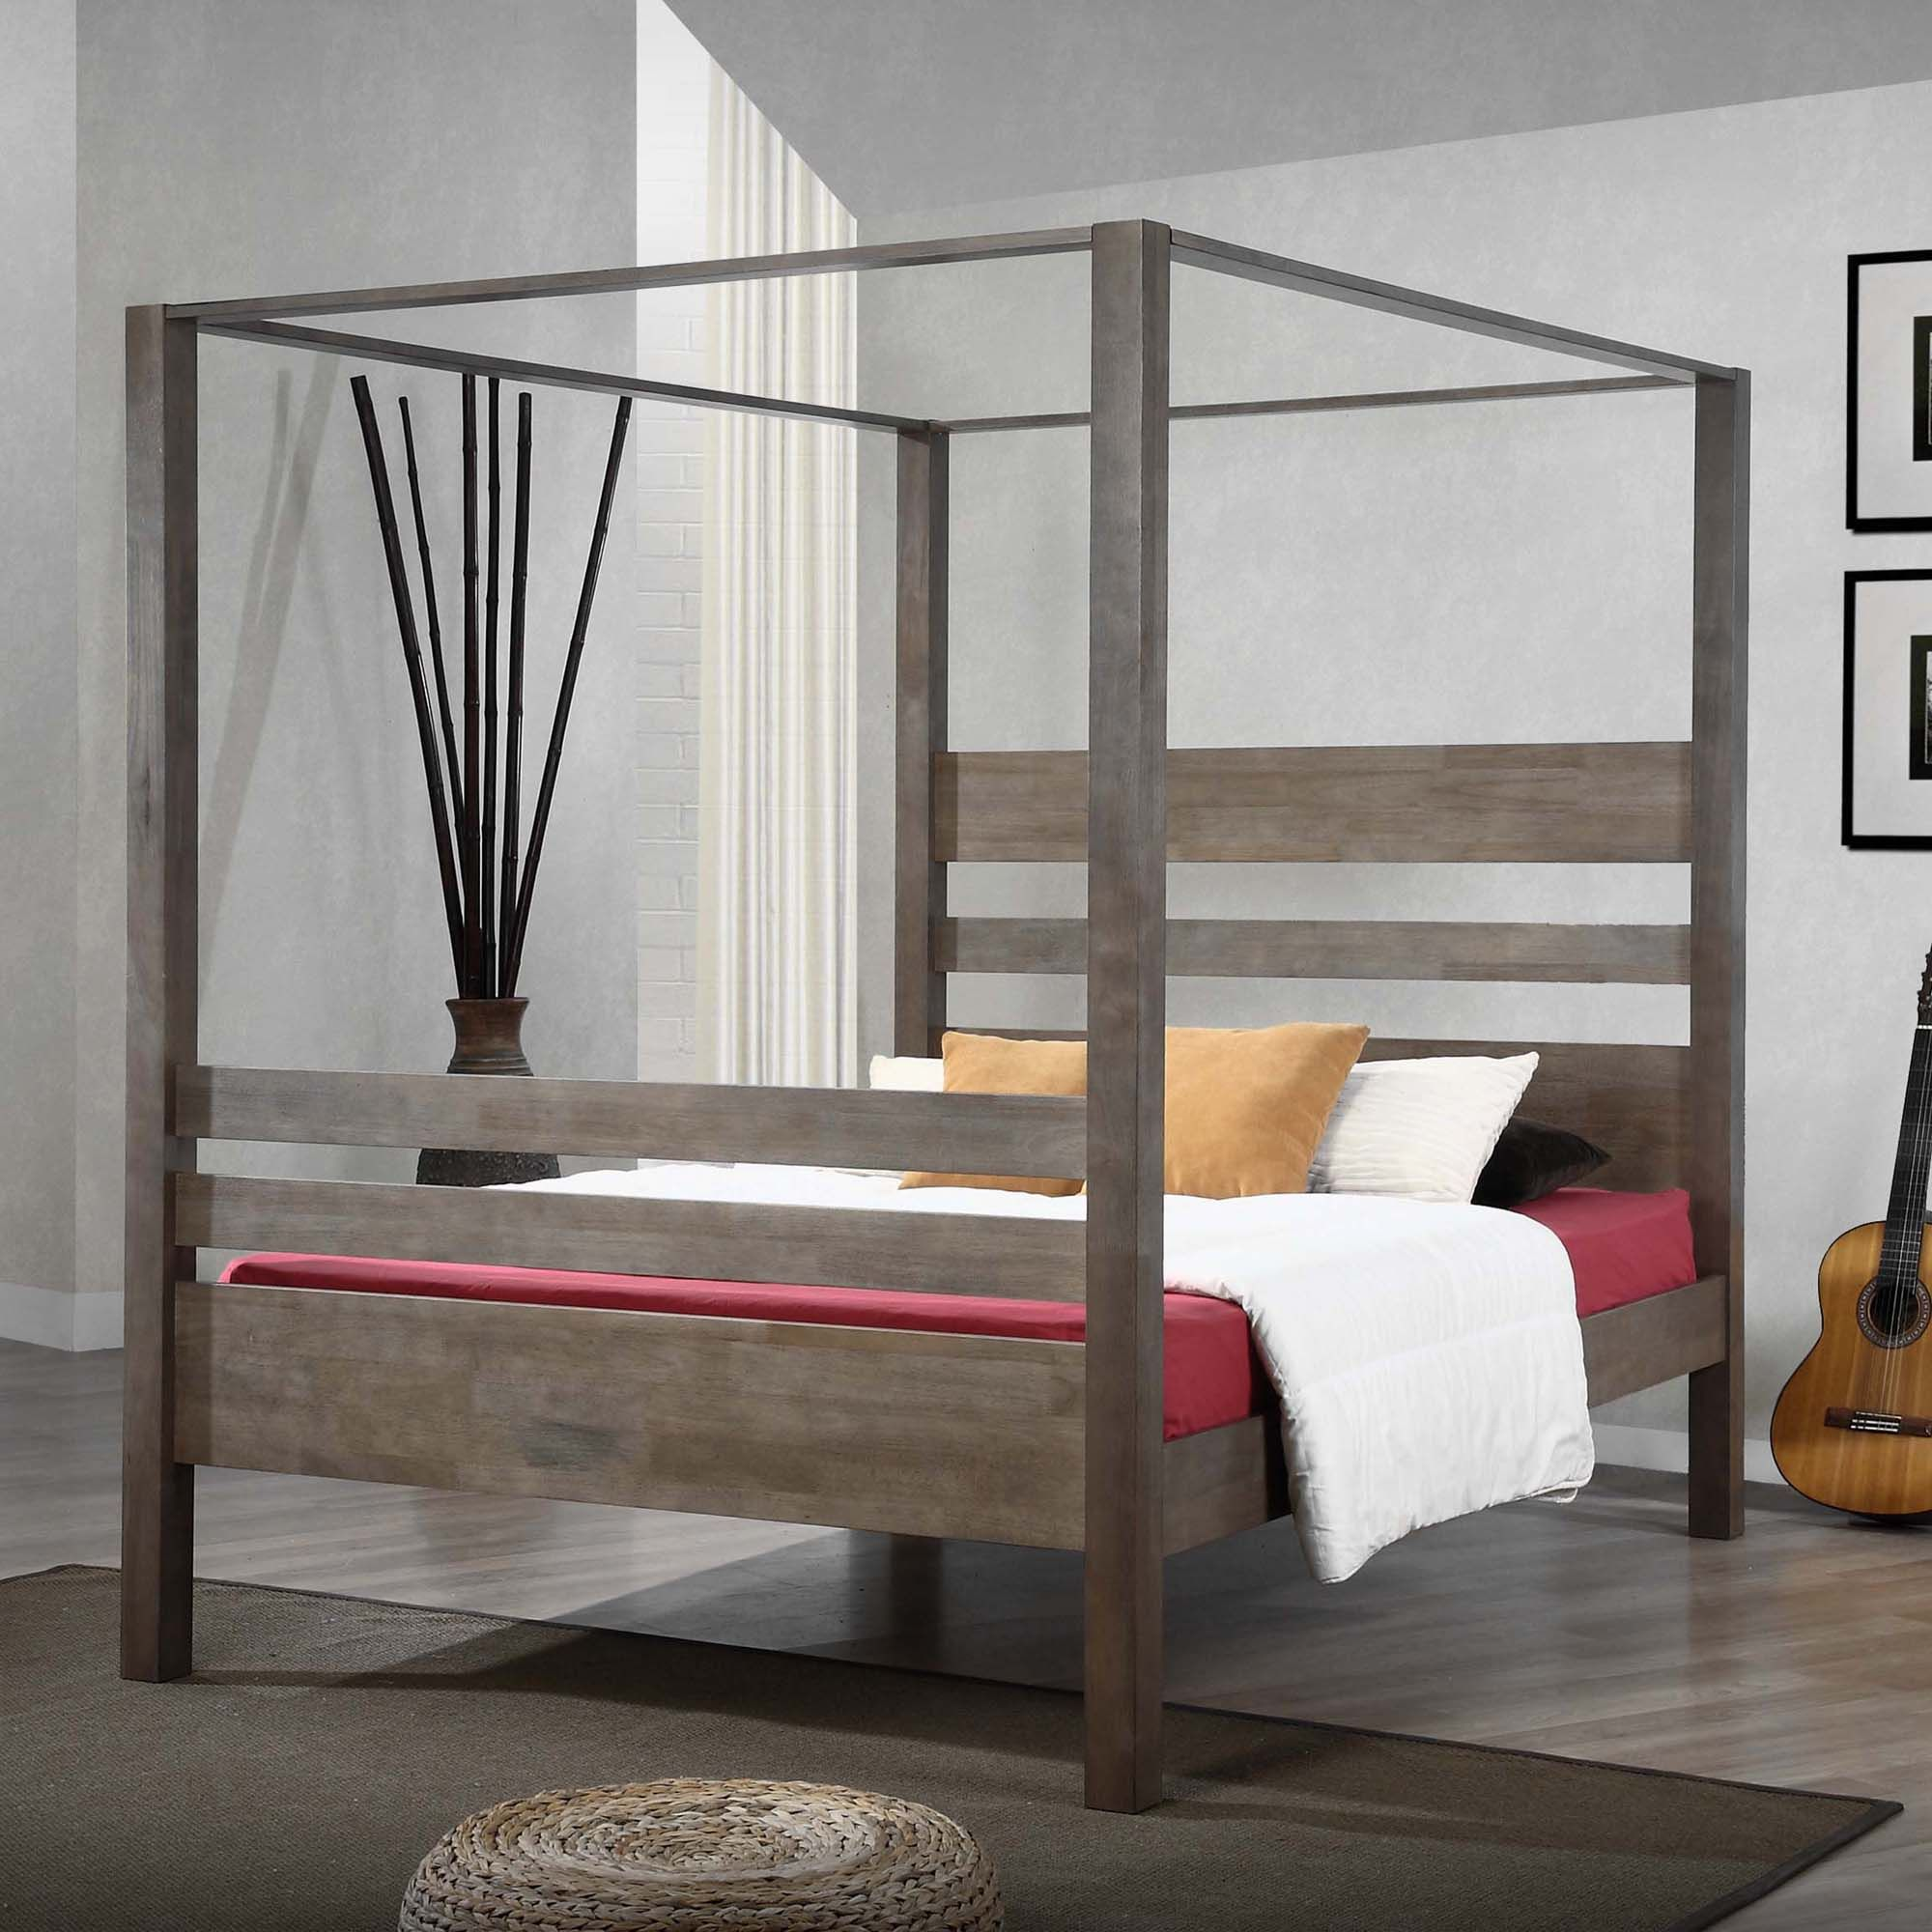 how to build bedroom furniture. 17 Best Images About New Bedroom On Pinterest | Peacocks, Floor Mirrors And Poster Beds How To Build Furniture D